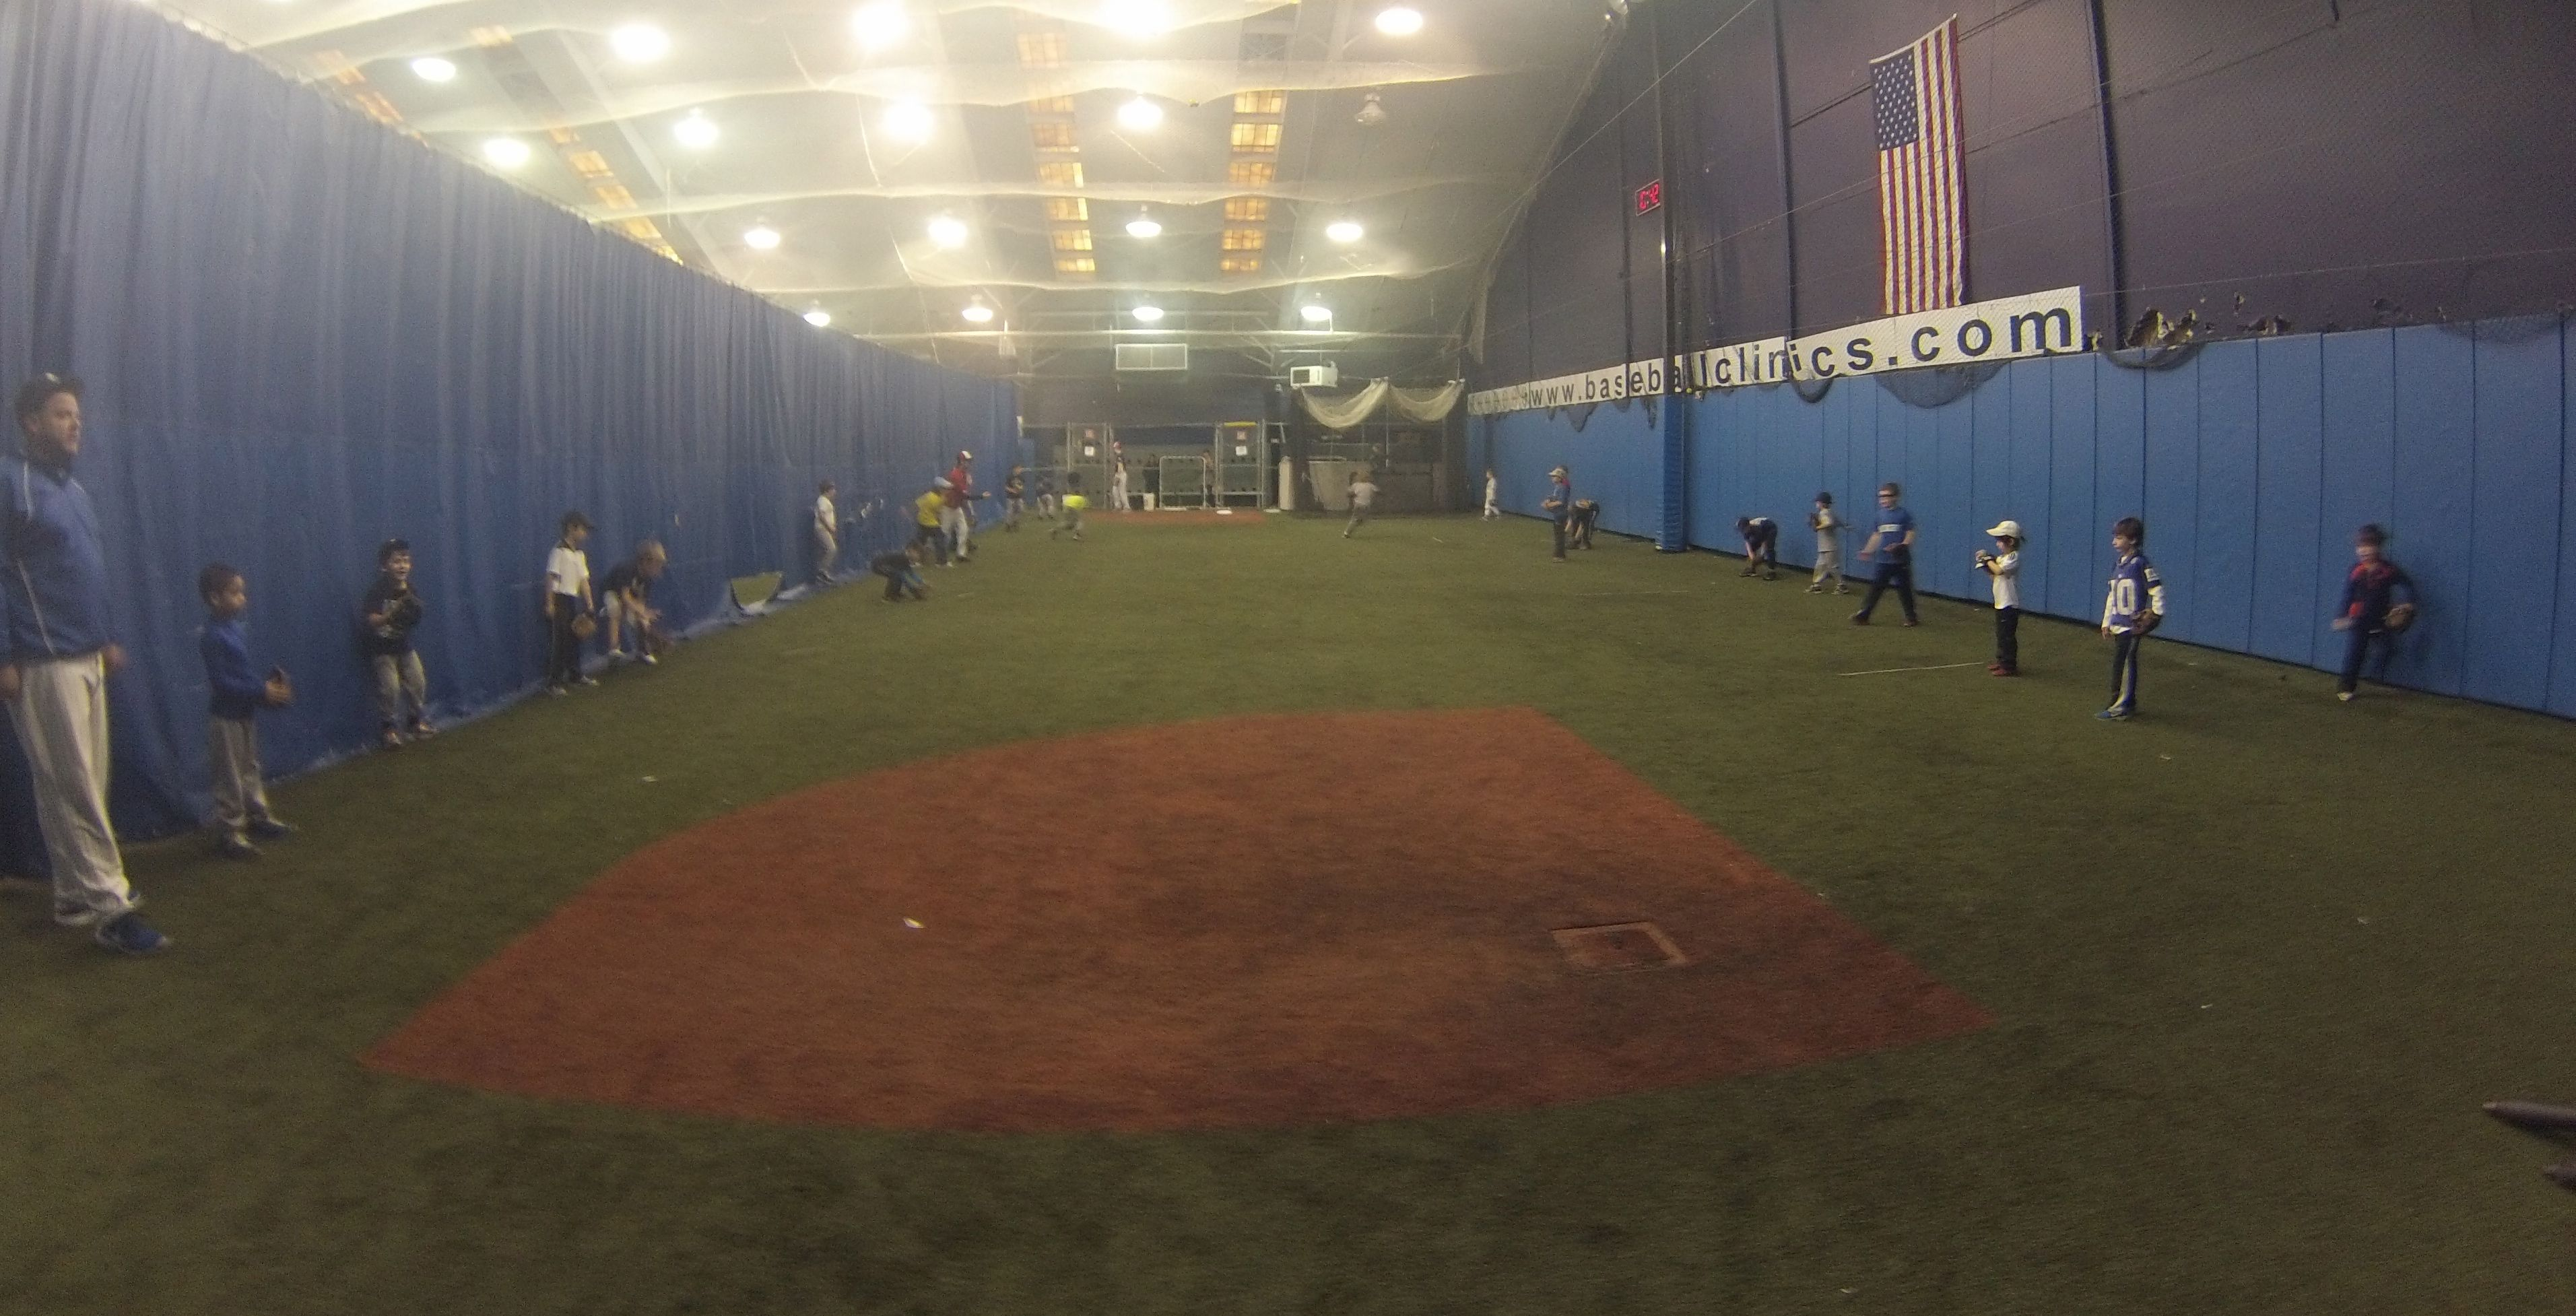 Coach Bobby Lineburg and Coach Jay Hardenberg working with the 6, 7, and 8 year olds on their groundball fundamentals.